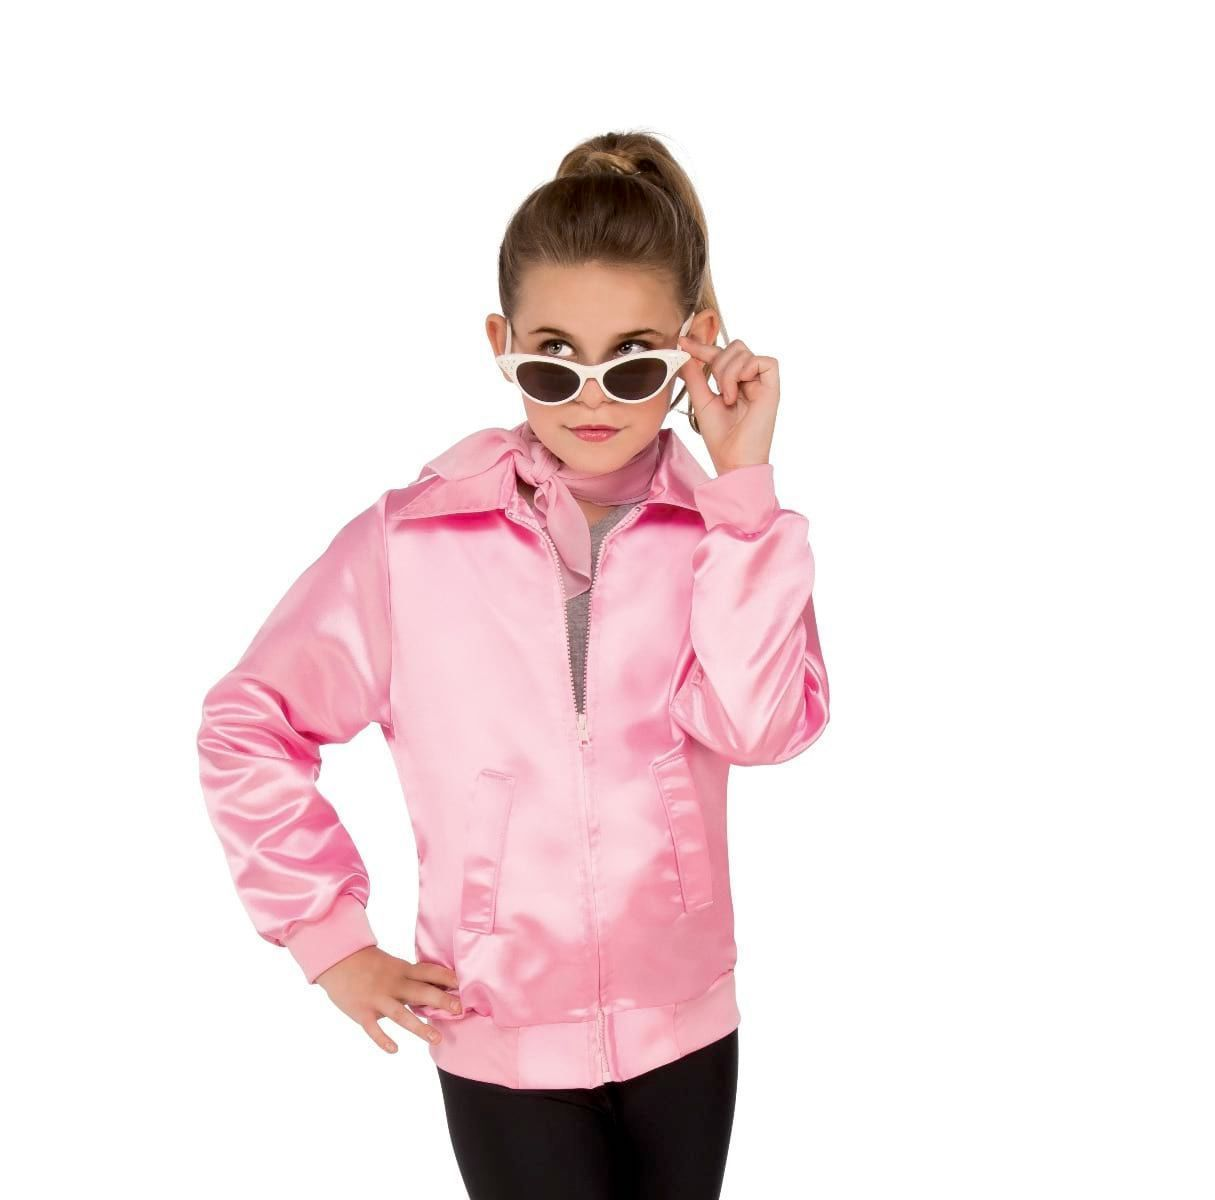 Rubies Costumes LARGE Girls Pink Ladies Jacket - Grease